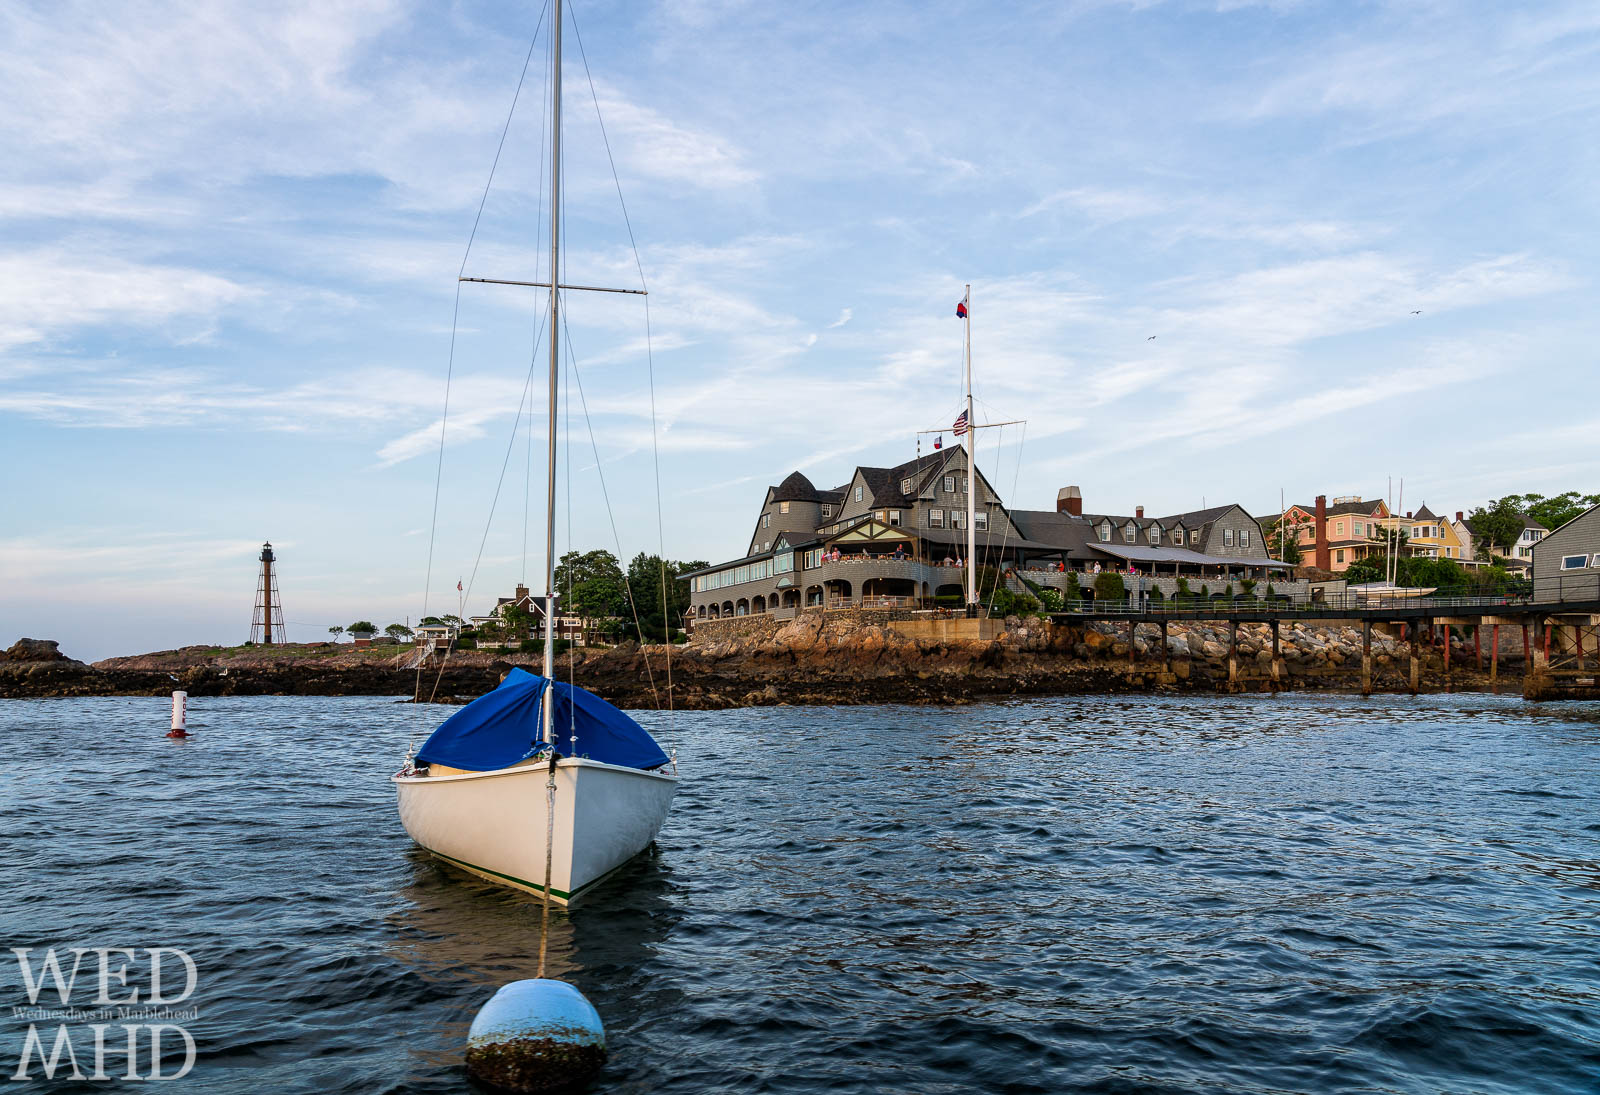 Cruising around Marblehead Harbor on a Friday evening and rounding the corner at the CYC to find this view of a boat on its mooring and the lighthouse standing tall at Chandler Hovey Park